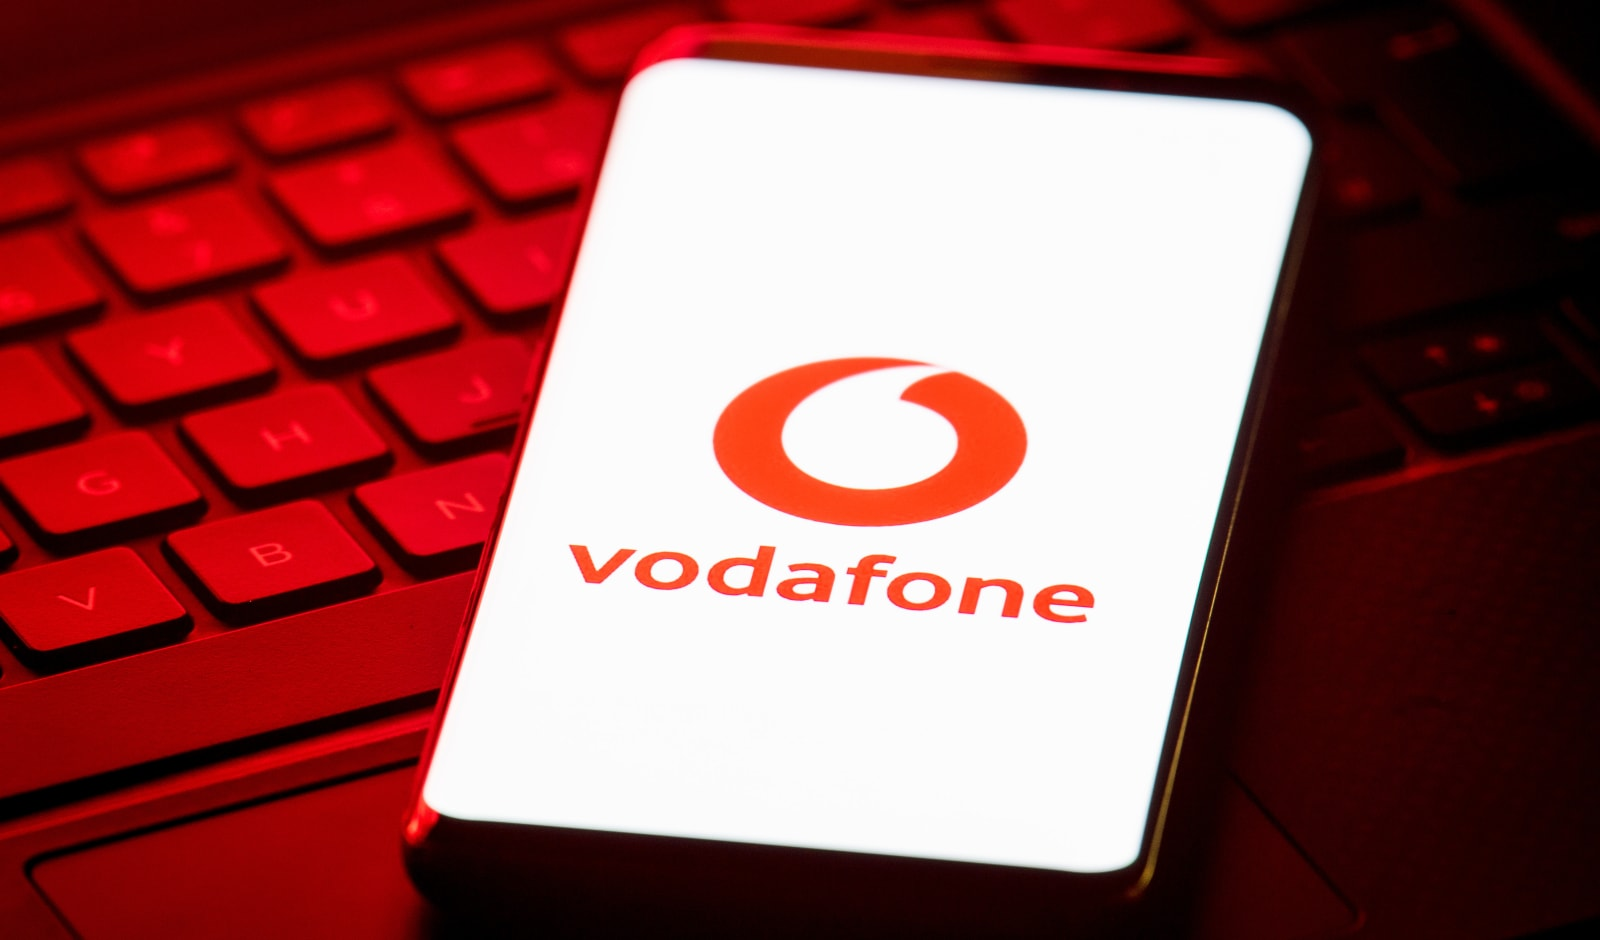 Vodafone will launch UK's first 5G service on July 3rd